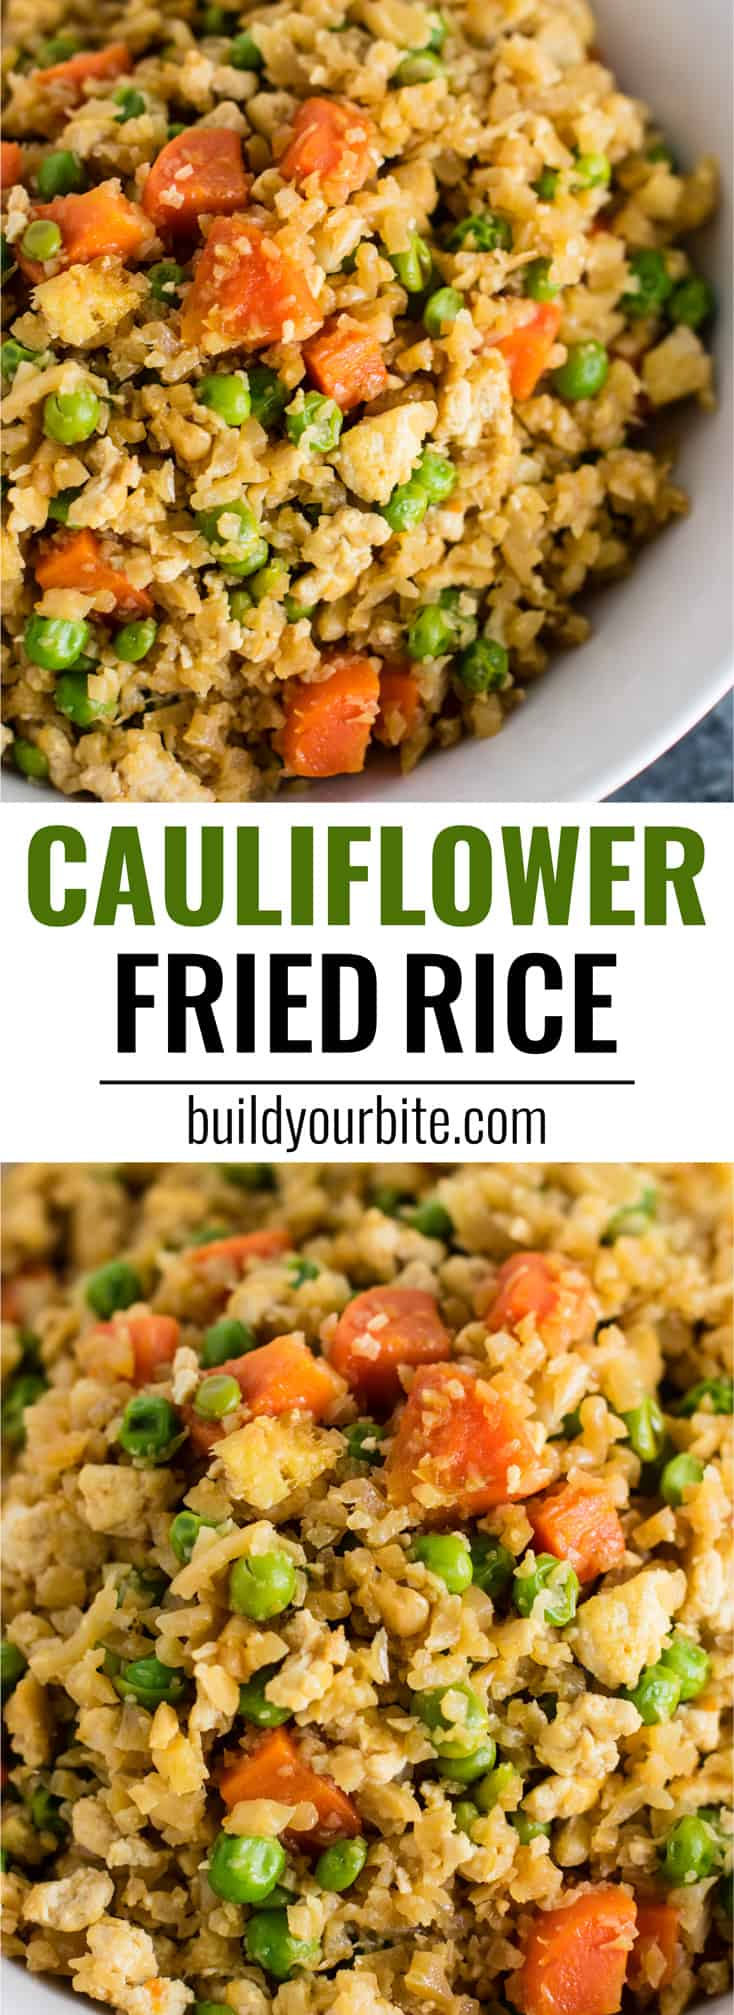 This cauliflower tofu fried rice is vegan, gluten free, grain free, and low carb. You won't believe this doesn't have rice or eggs in it! My new favorite dinner recipe! #grainfree #glutenfree #cauliflowerfriedrice #tofufriedrice #vegan #dinner #eggfree